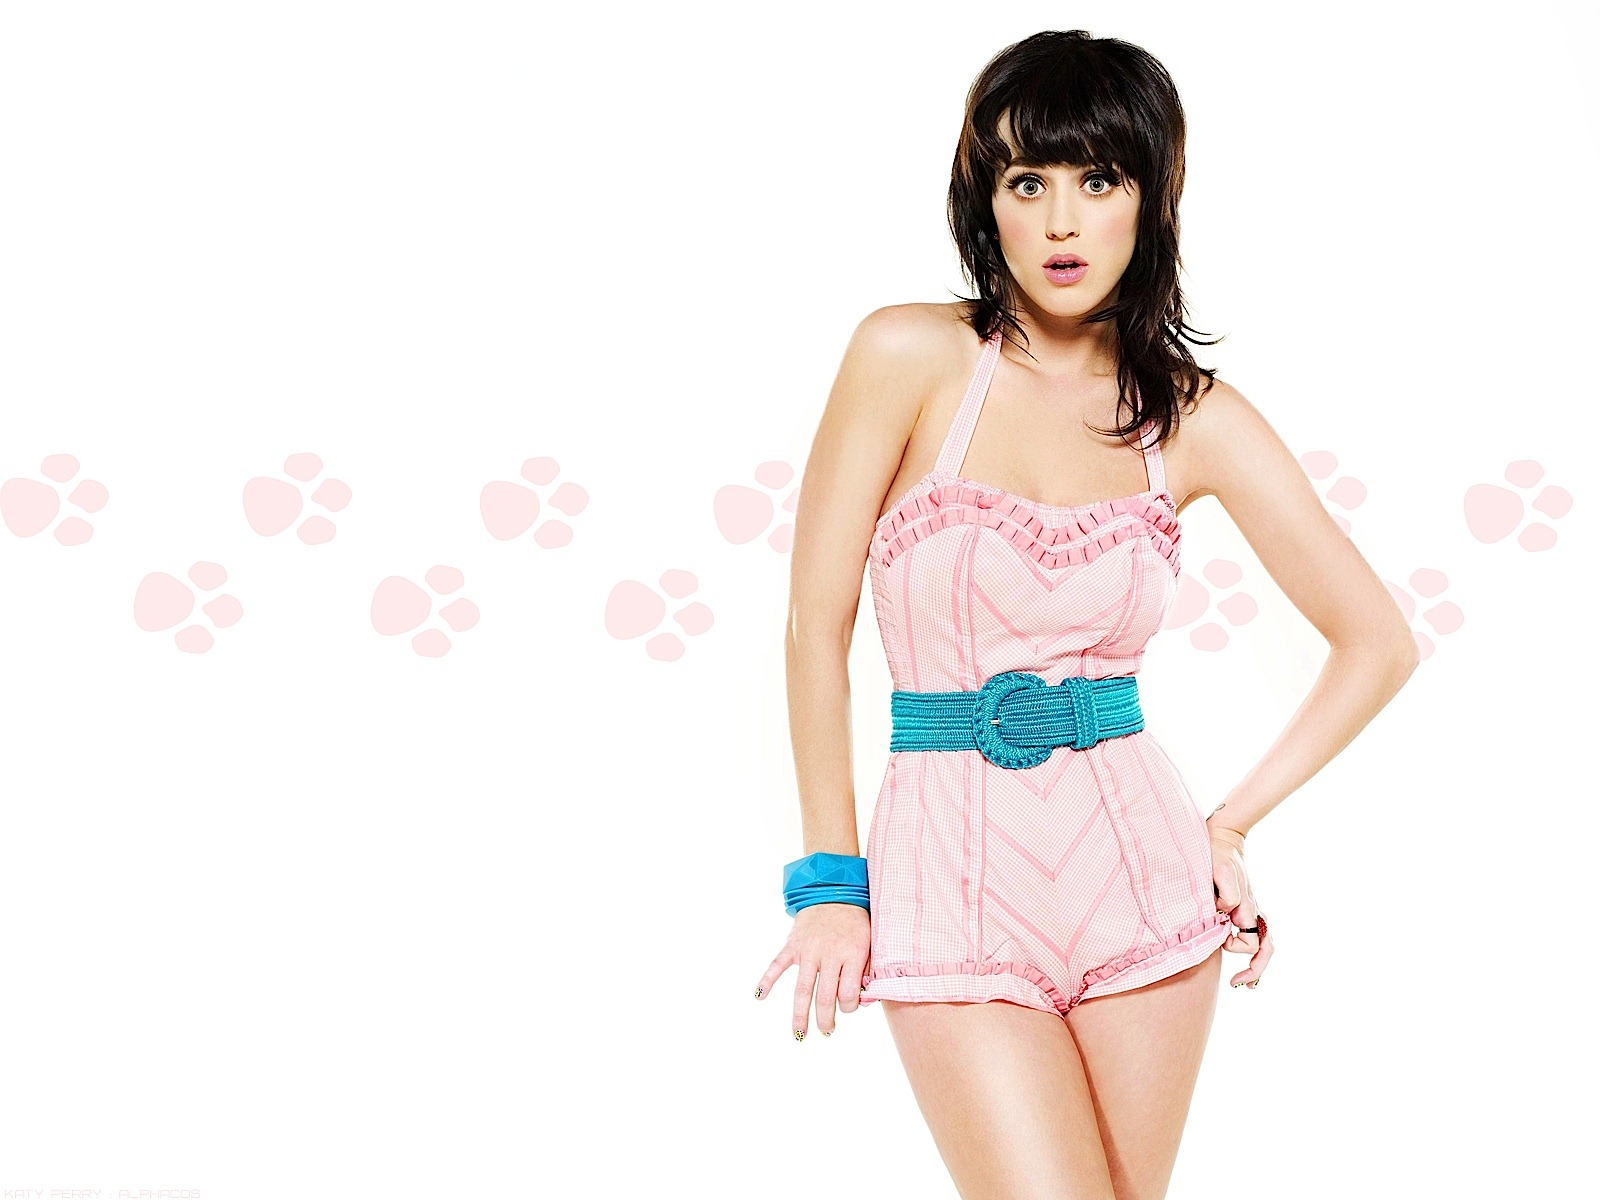 katy perry wallpaper 1080p - photo #28